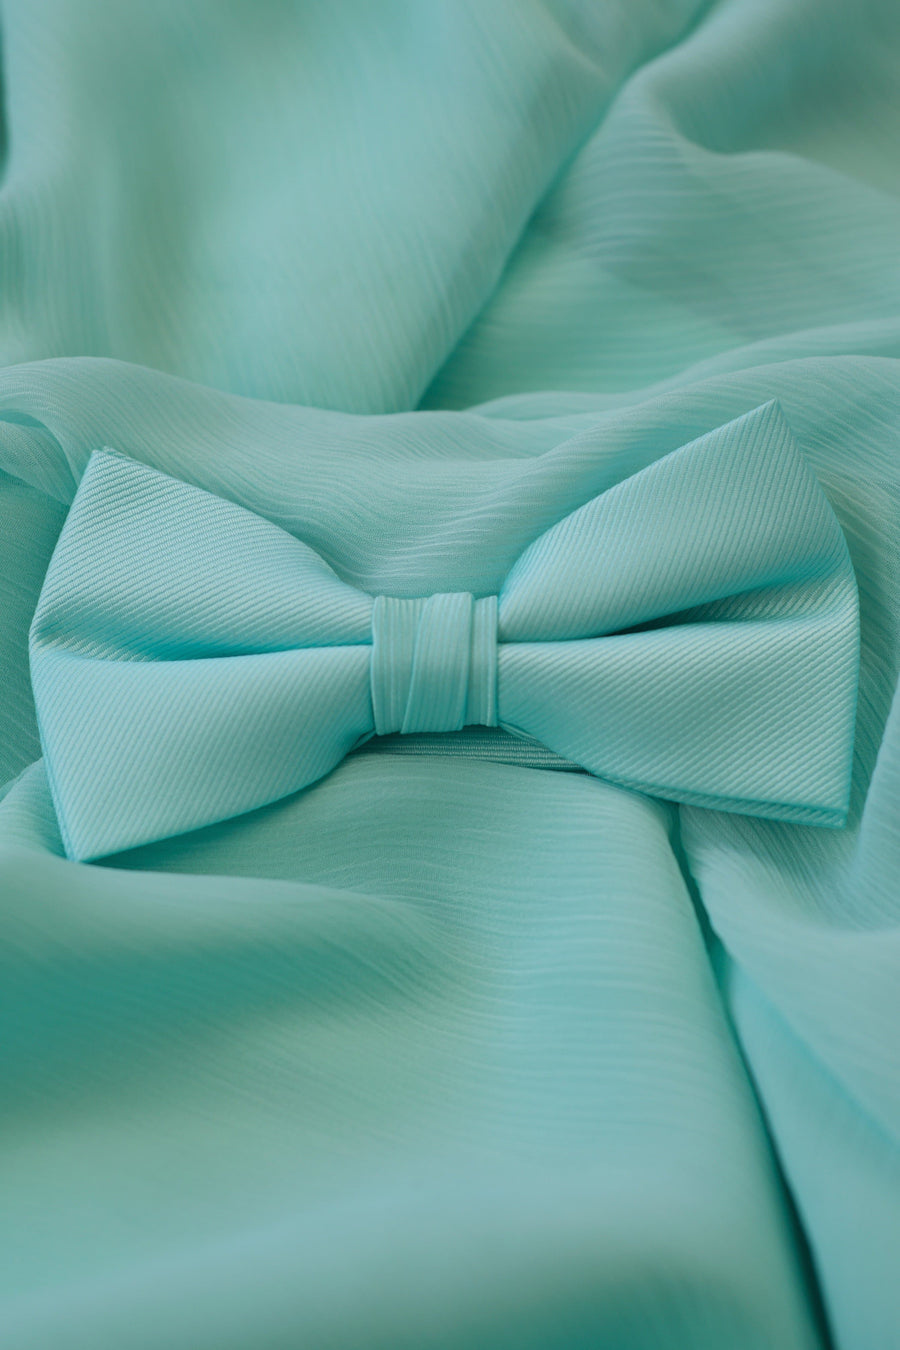 Bridesmaid Dresses - Classic Groomsmen Bow Ties - BridesMade